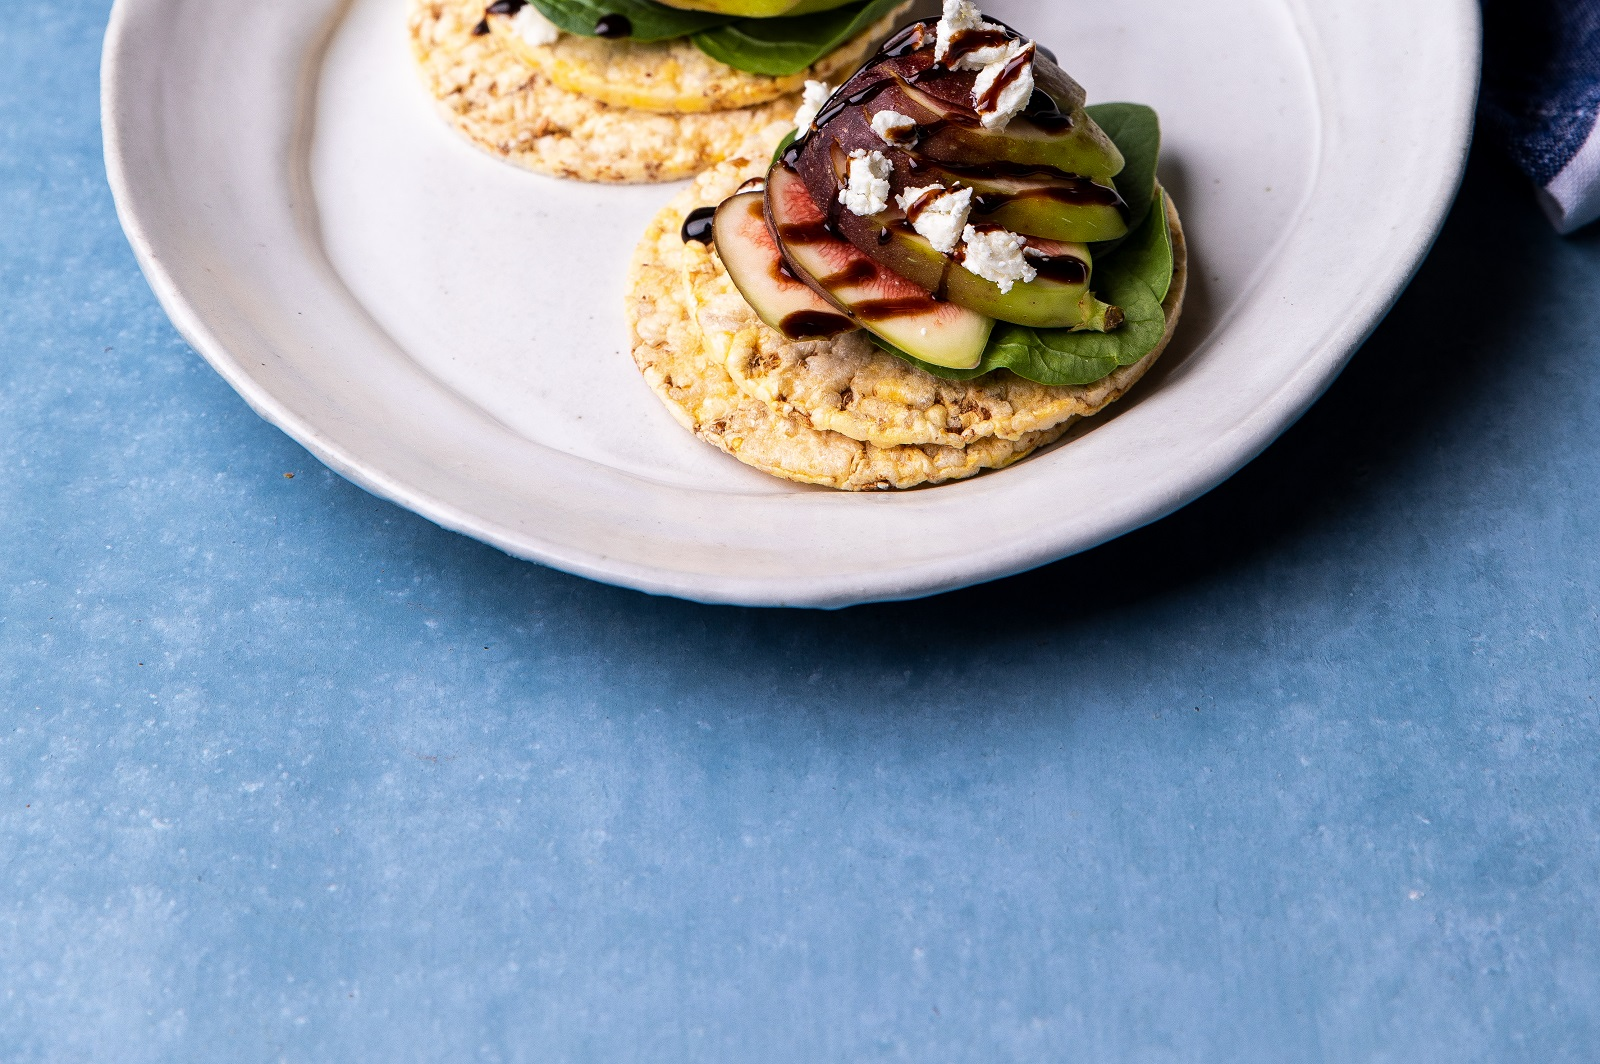 Baby Spinach, Fig, Goats Curd & Balsamic Glaze on CORN THINS slices